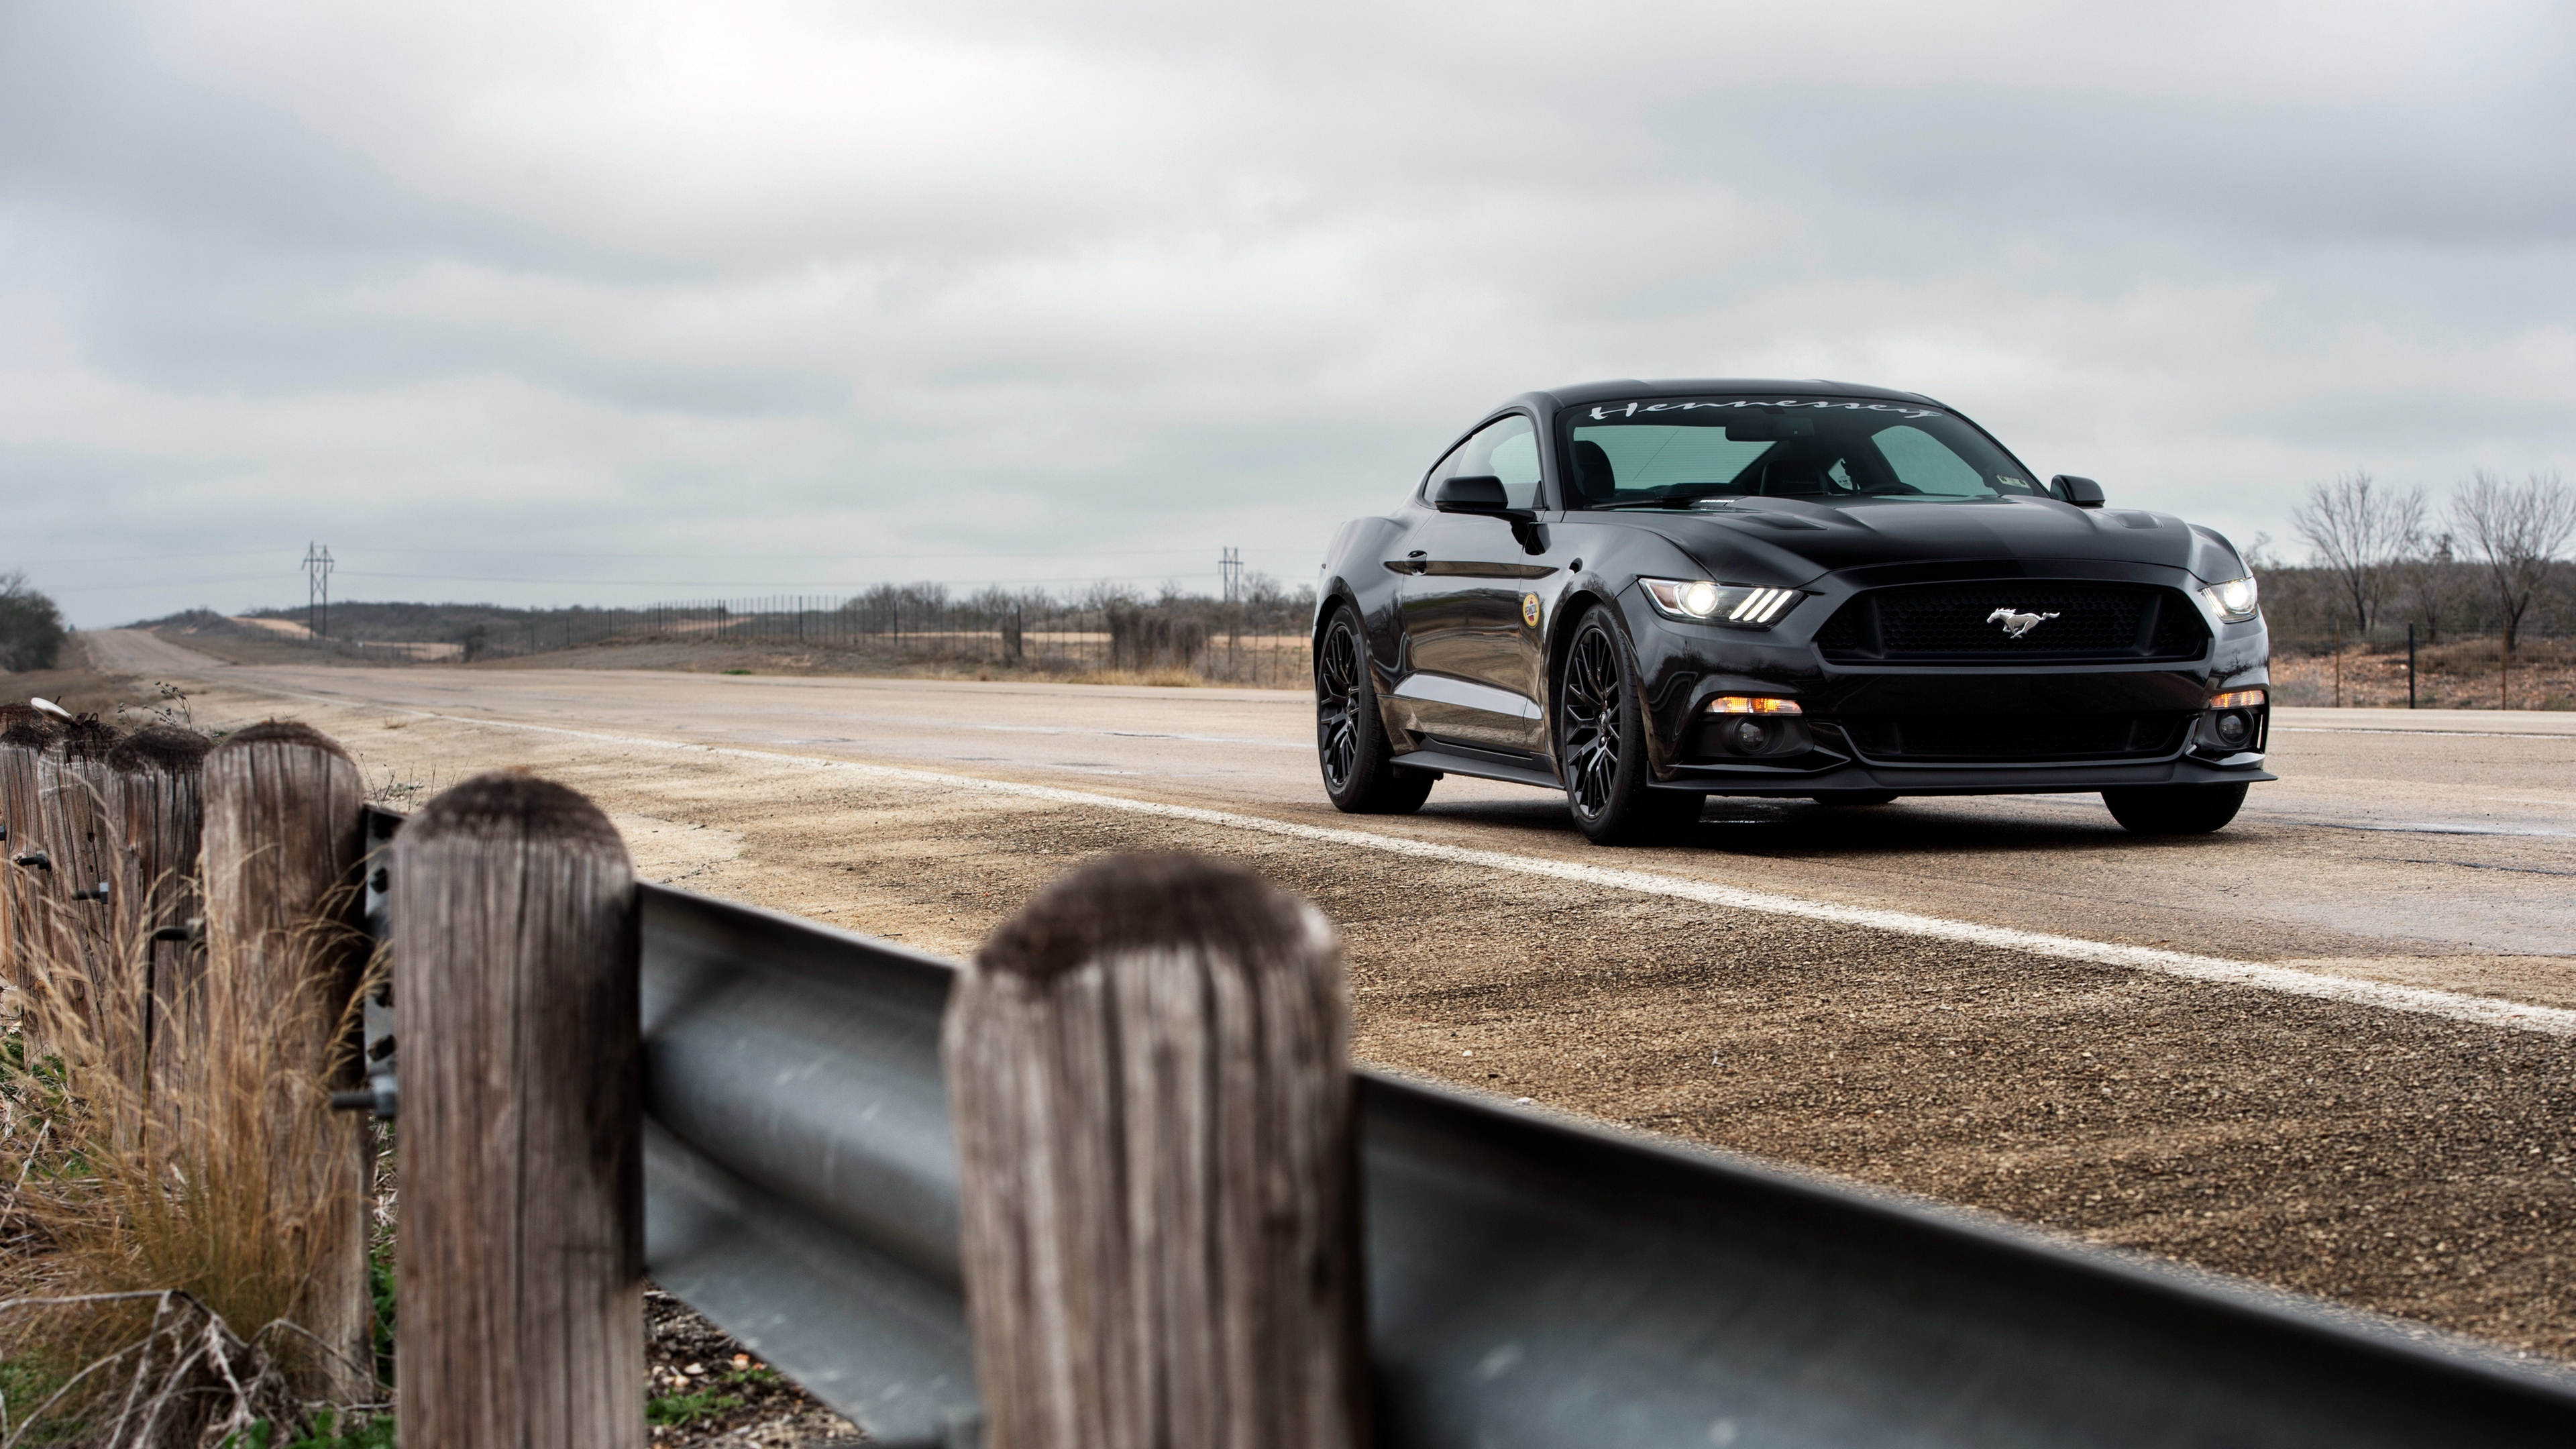 ford mustang gt hpe700 hennessey 4k 1538936339 - ford, mustang, gt, hpe700, hennessey 4k - Mustang, gt, Ford